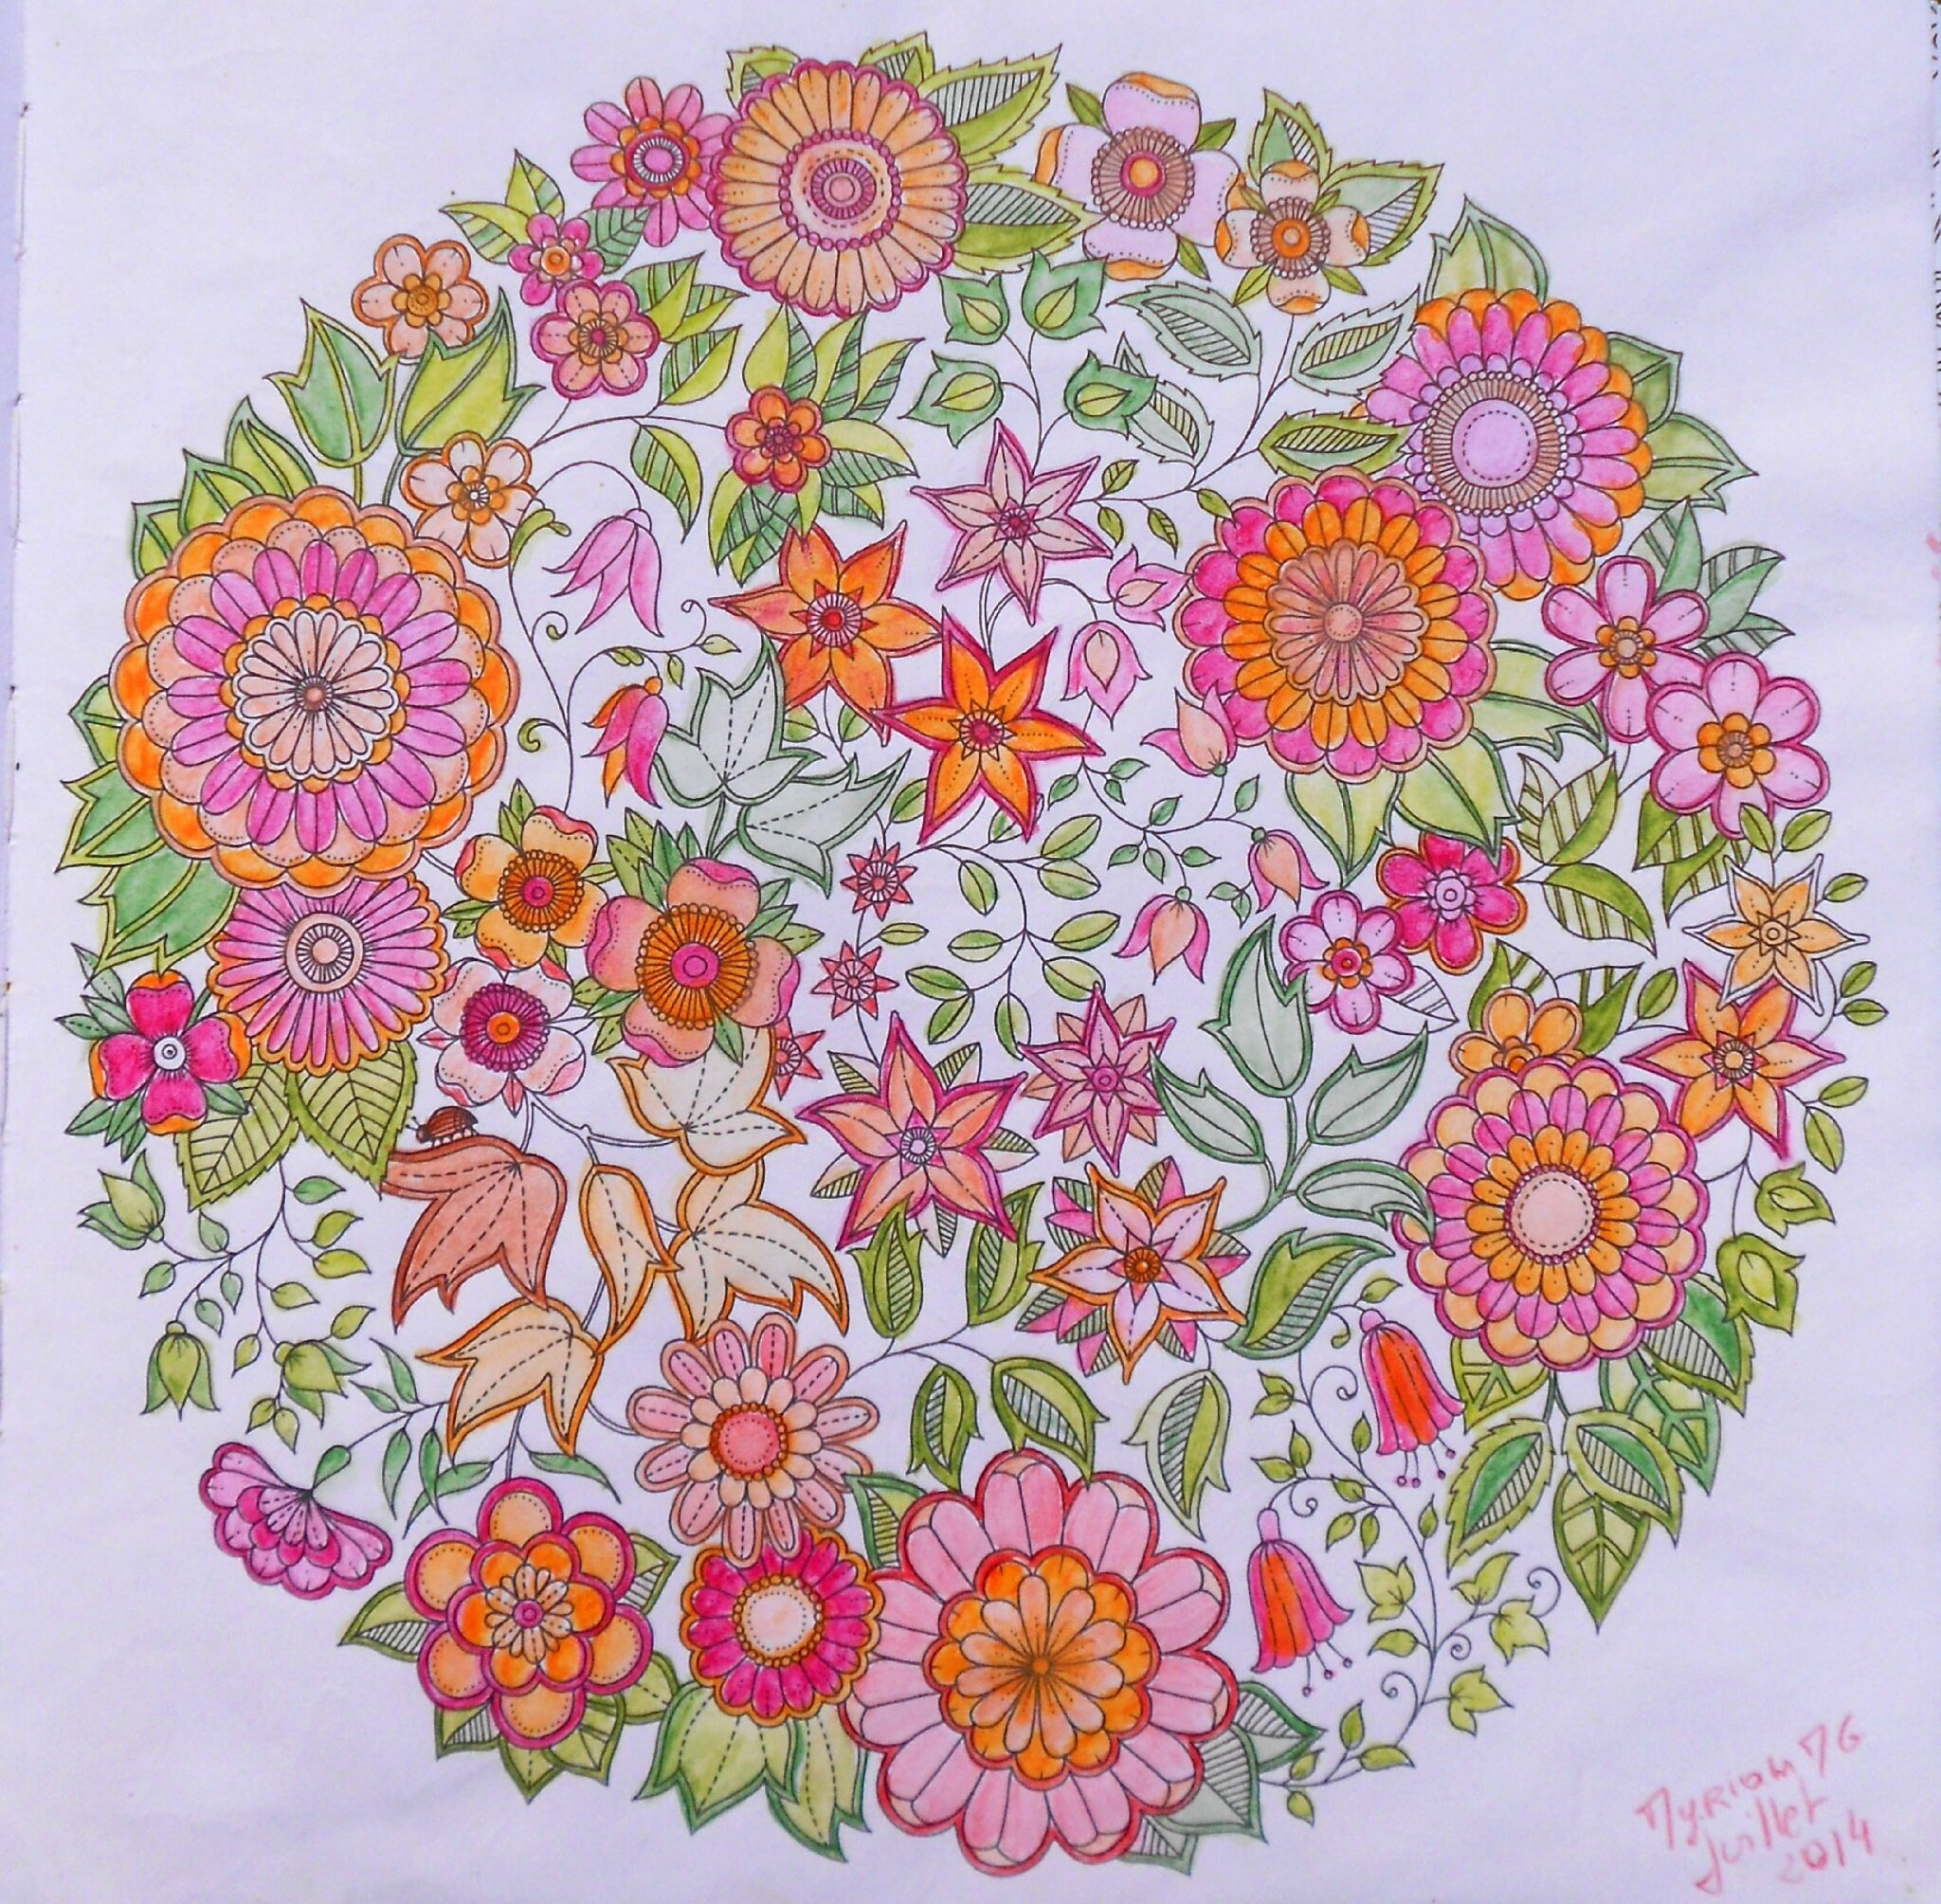 Coloriages anti stress myriammg scrap for O jardin secret suresnes